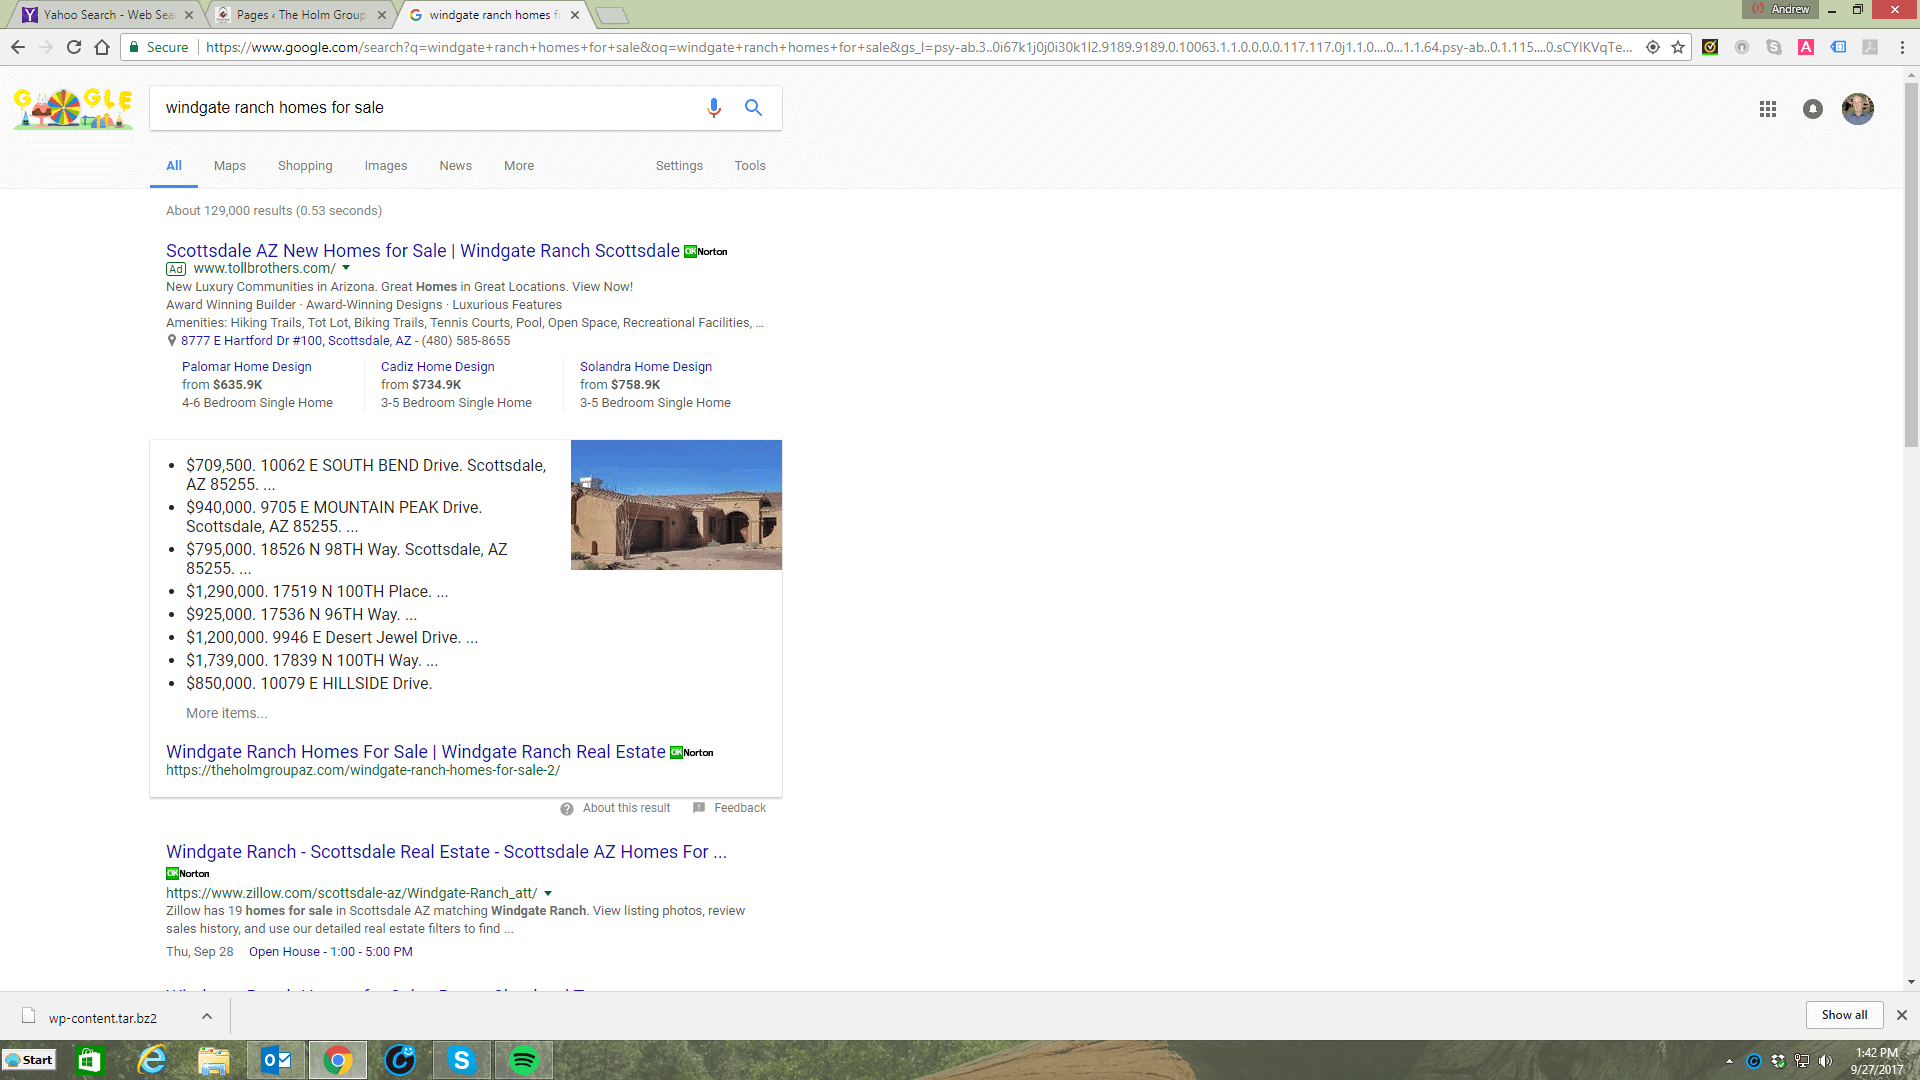 Windgate Ranch Google Search